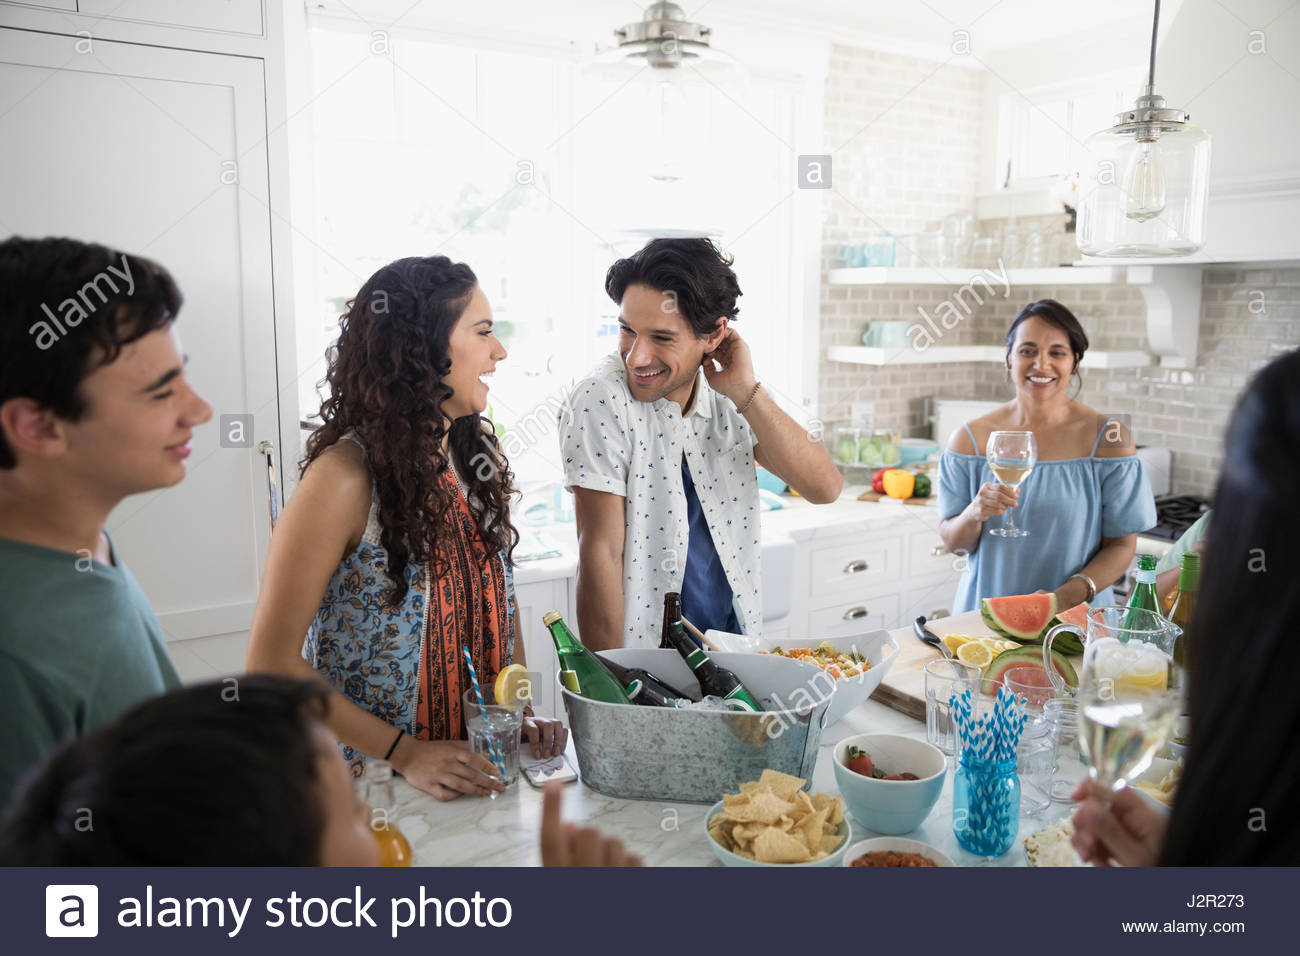 Family and friends drinking and eating in beach house kitchen - Stock Image